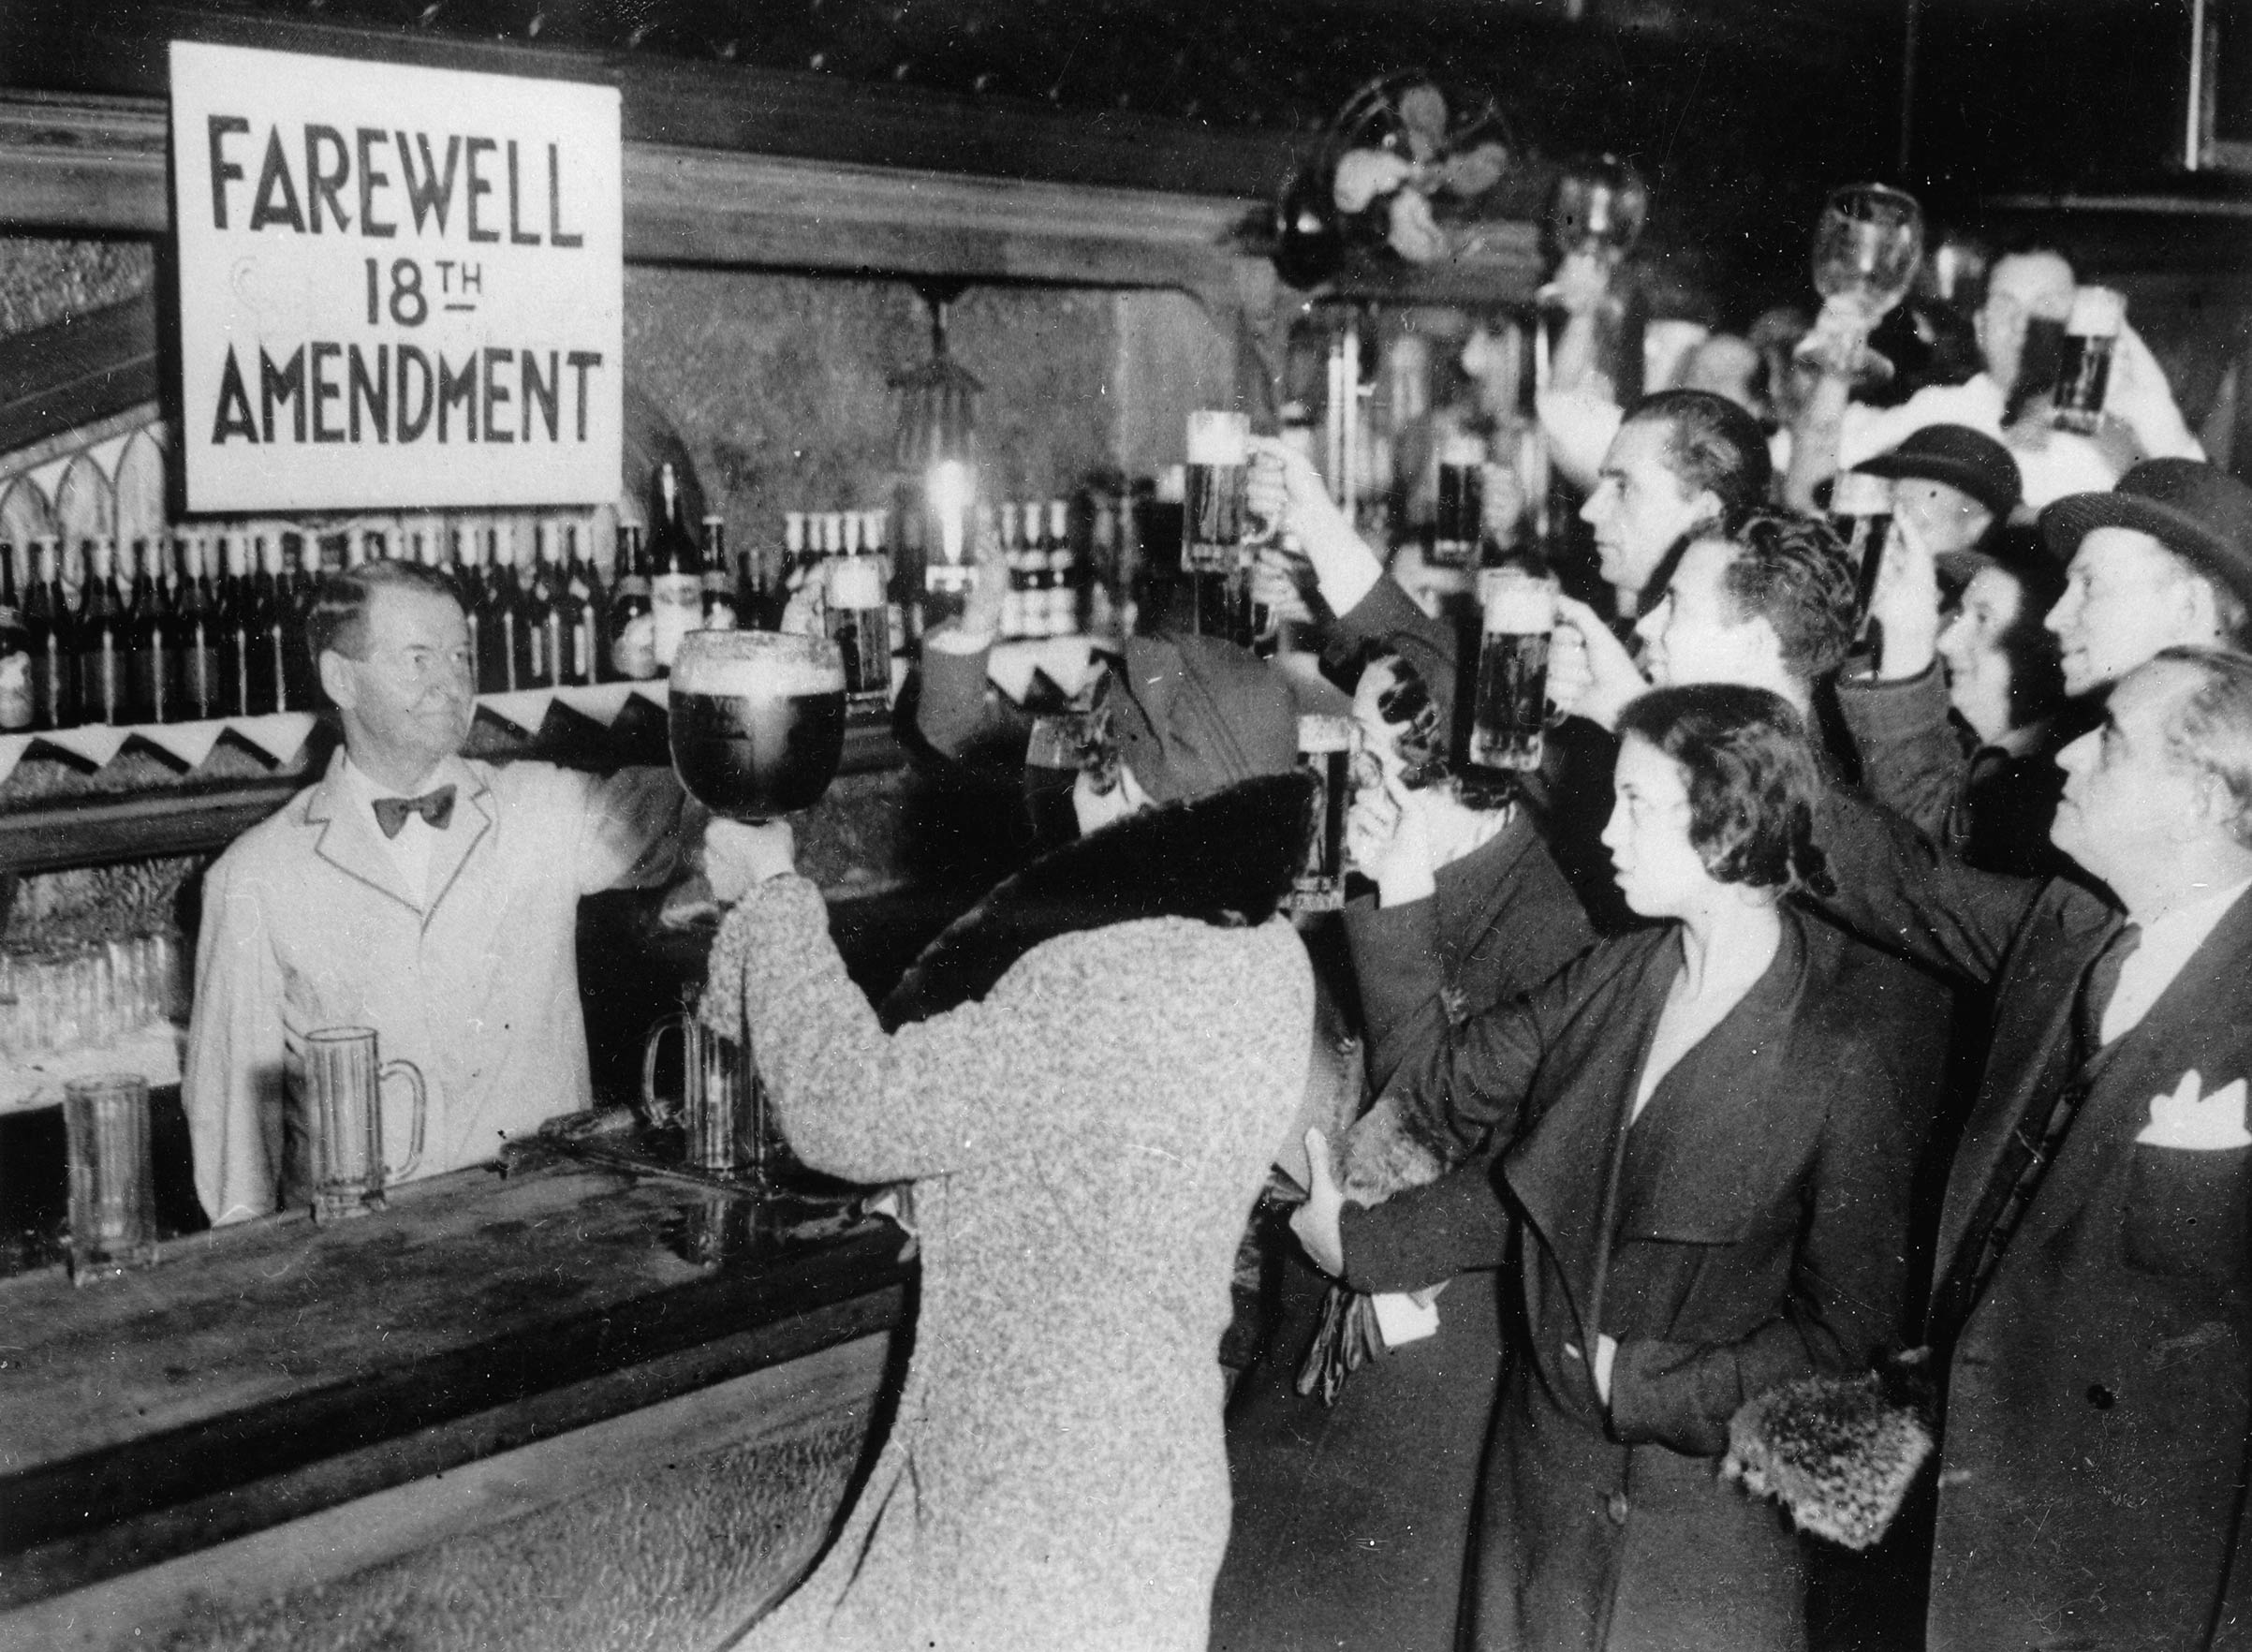 New Yorkers bid farewell to the 18th Amendment that legalized Prohibition and which was repealed by the 21st Amendment on Dec. 5, 1933.